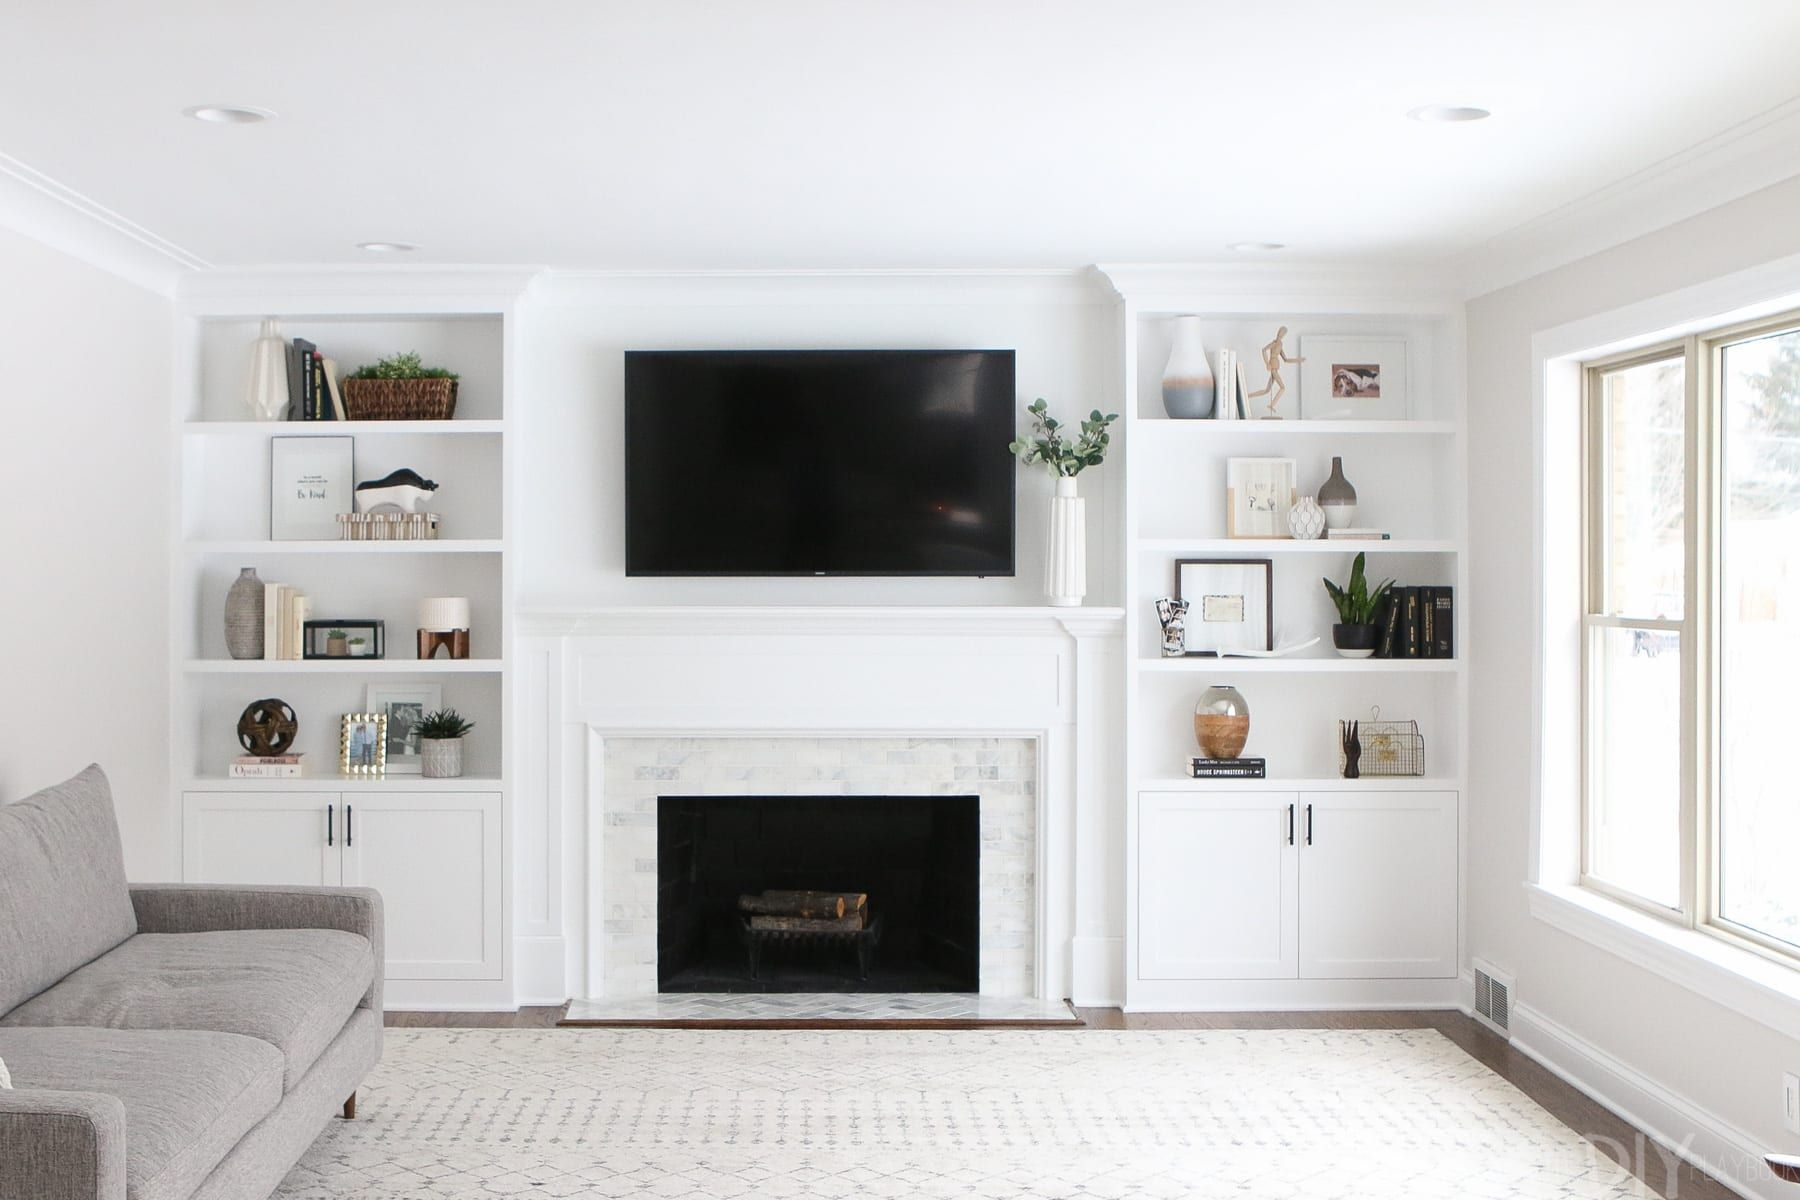 The Dos and Don'ts of Decorating BuiltIn Shelves - Built in shelves living room, Living room built ins, Built in around fireplace, Living room remodel, Living room with fireplace, Fireplace built ins - We often get asked about the  formula  we use for decorating our builtin shelves  The answer is that we don't have a secret method but we do have a few guidelines that we use to decorate builtin shelves and just about any shelf space in our homes  Here are our tips!